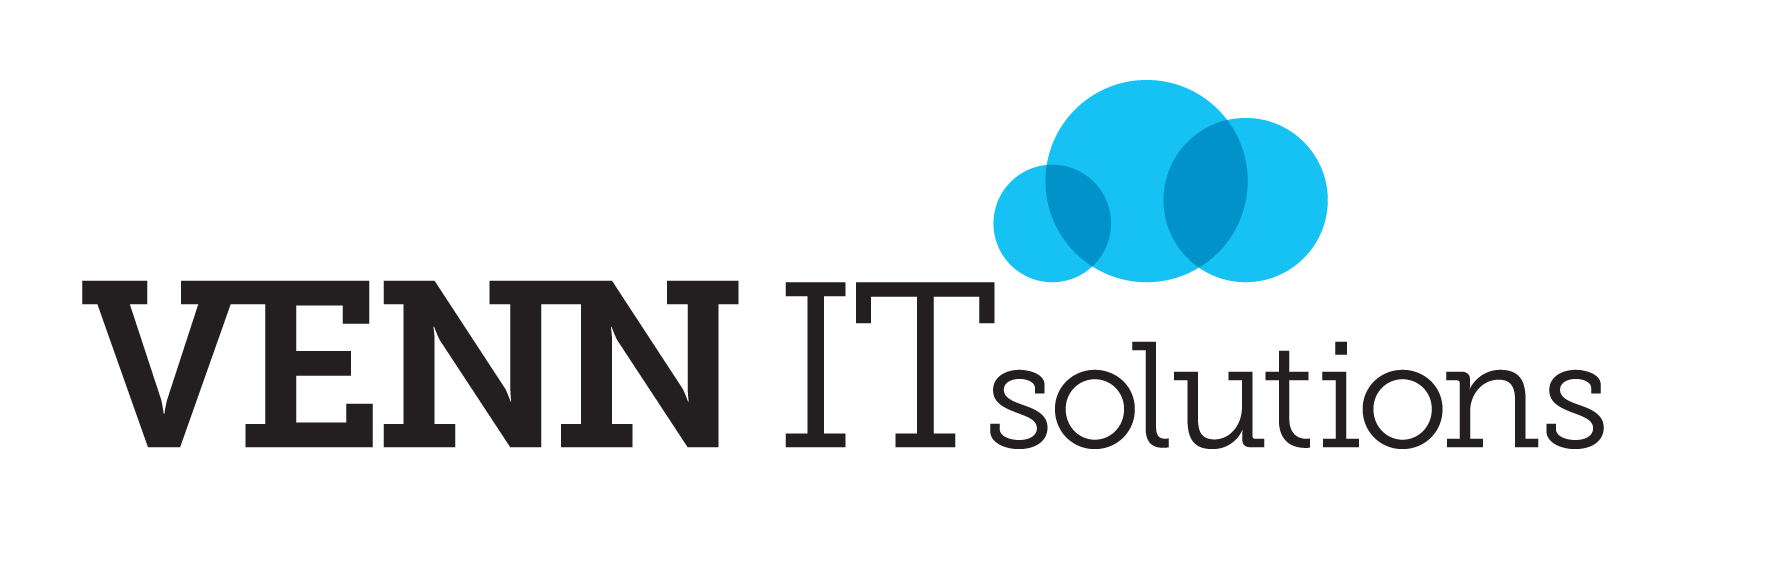 Venn IT solutions CS6